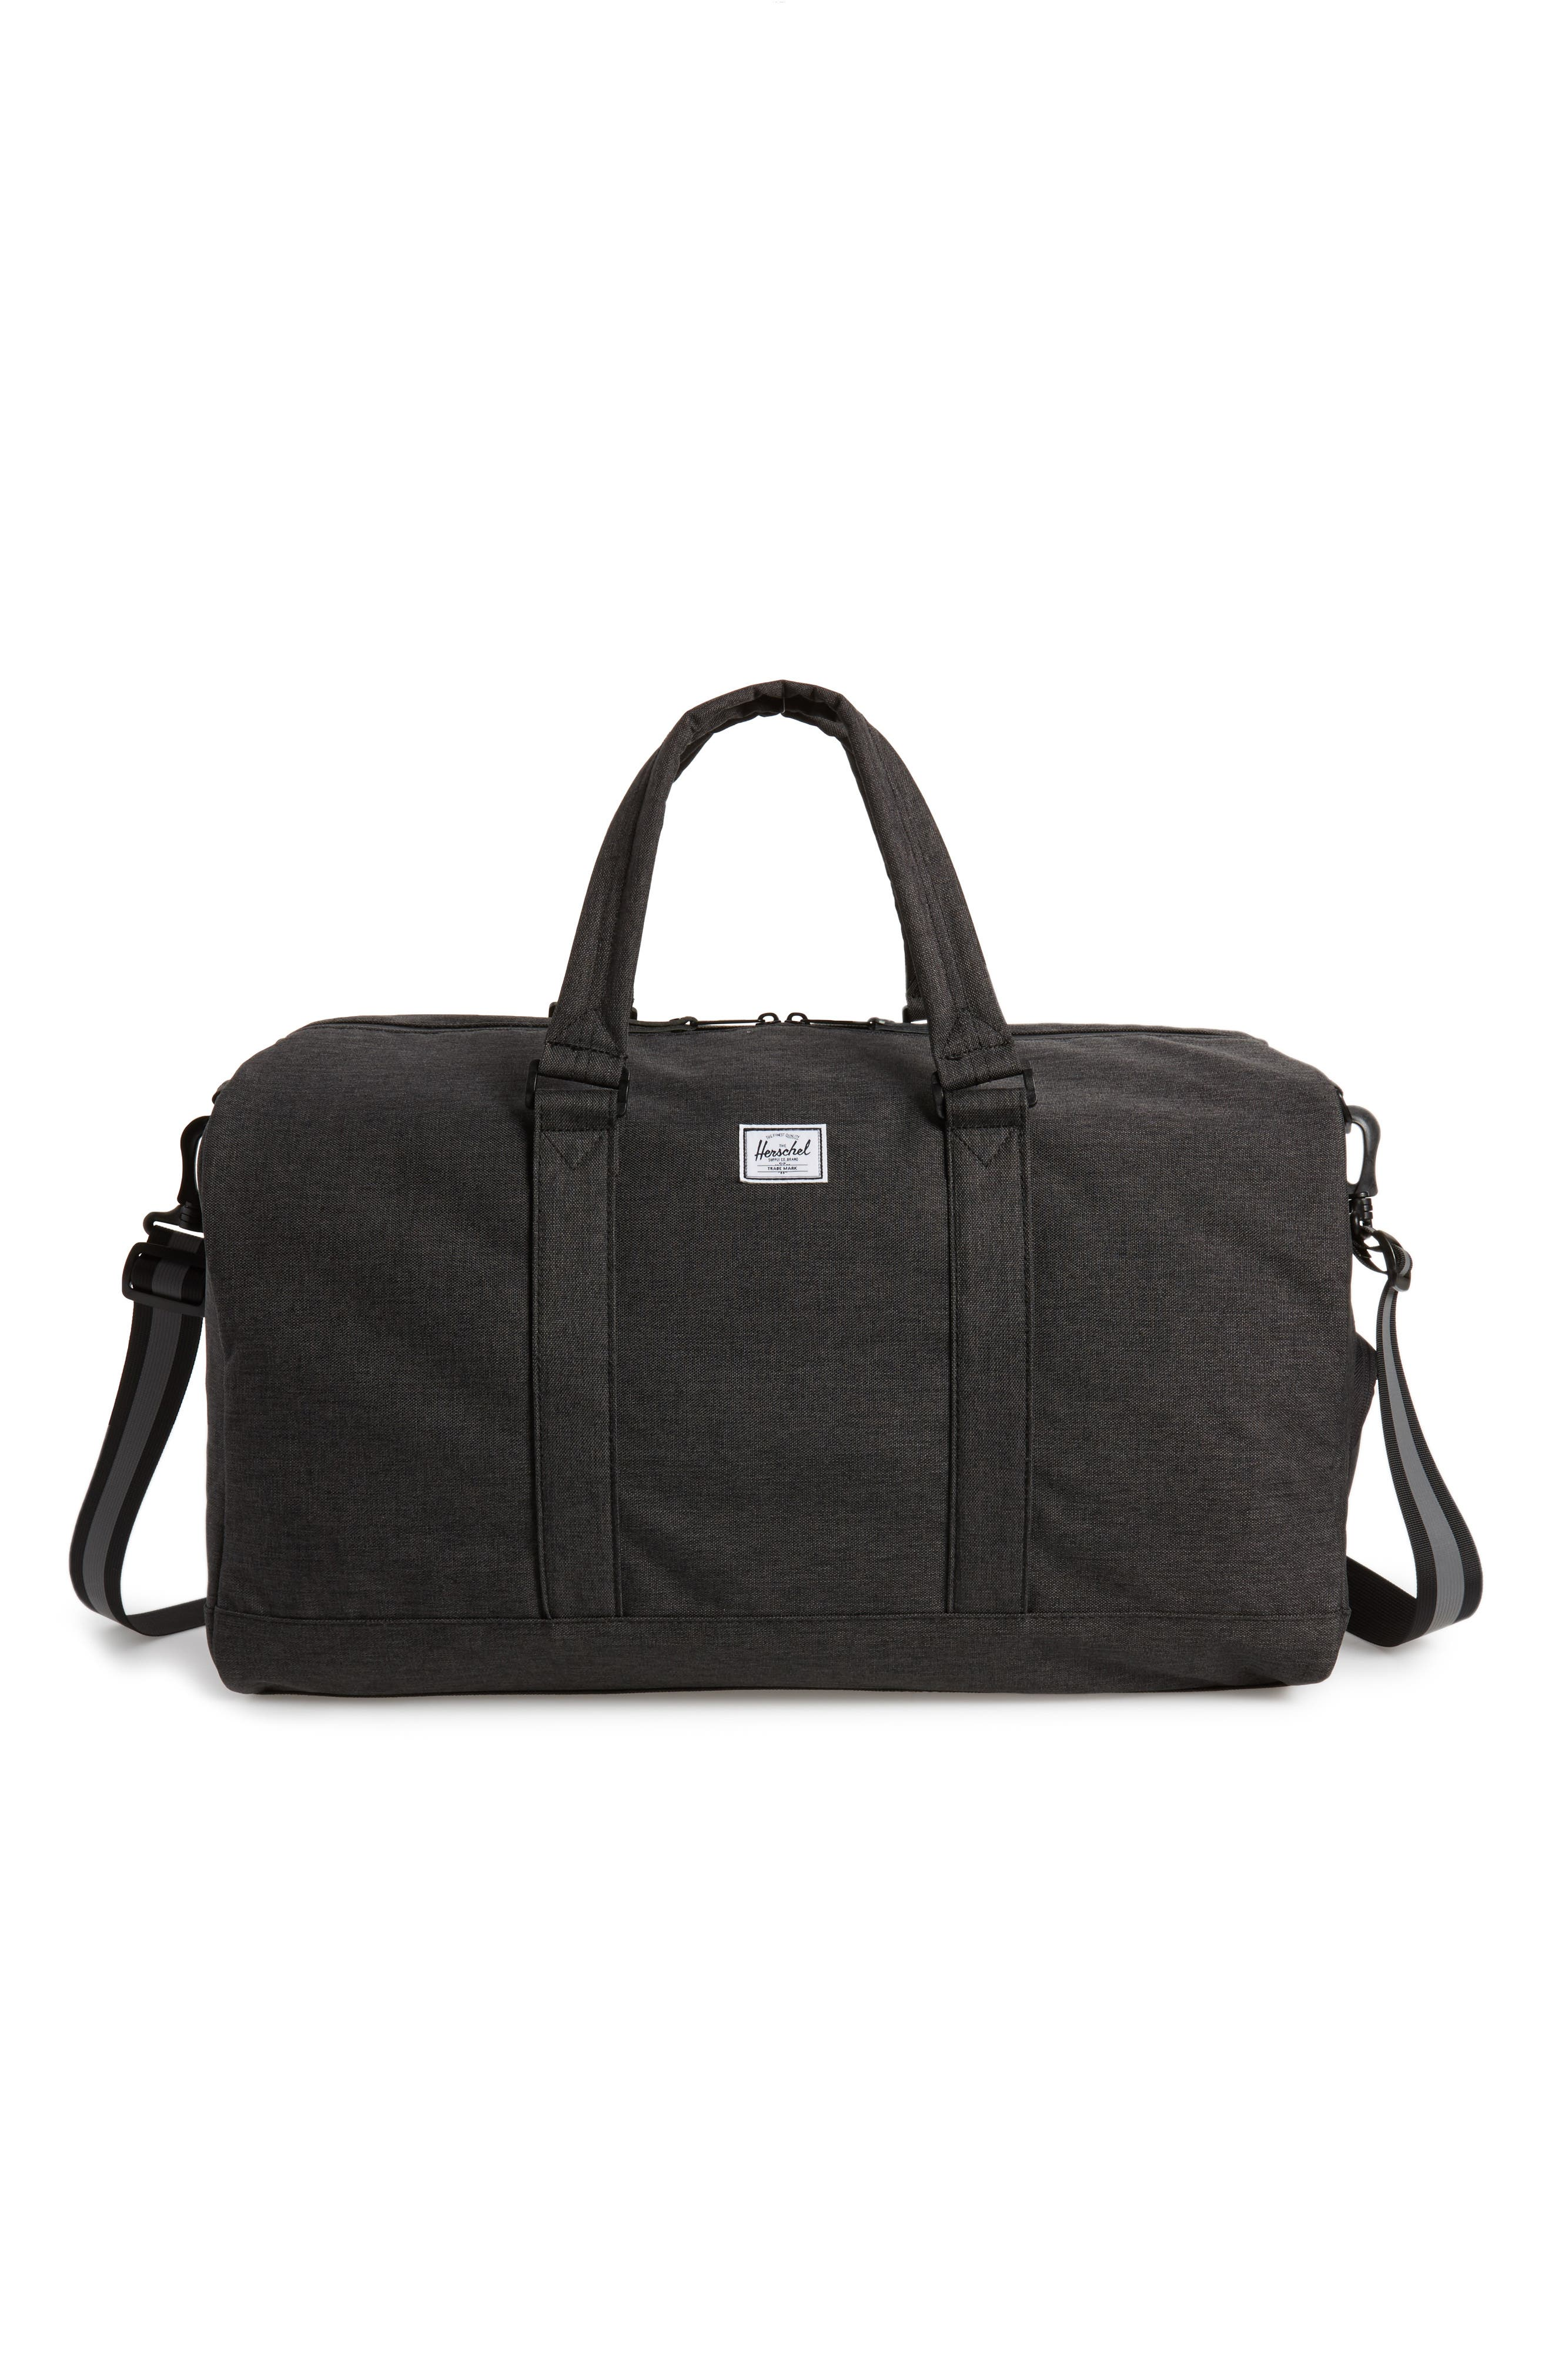 Herschel Supply Co. Novel Reflective Duffel Bag (Nordstrom Exclusive)